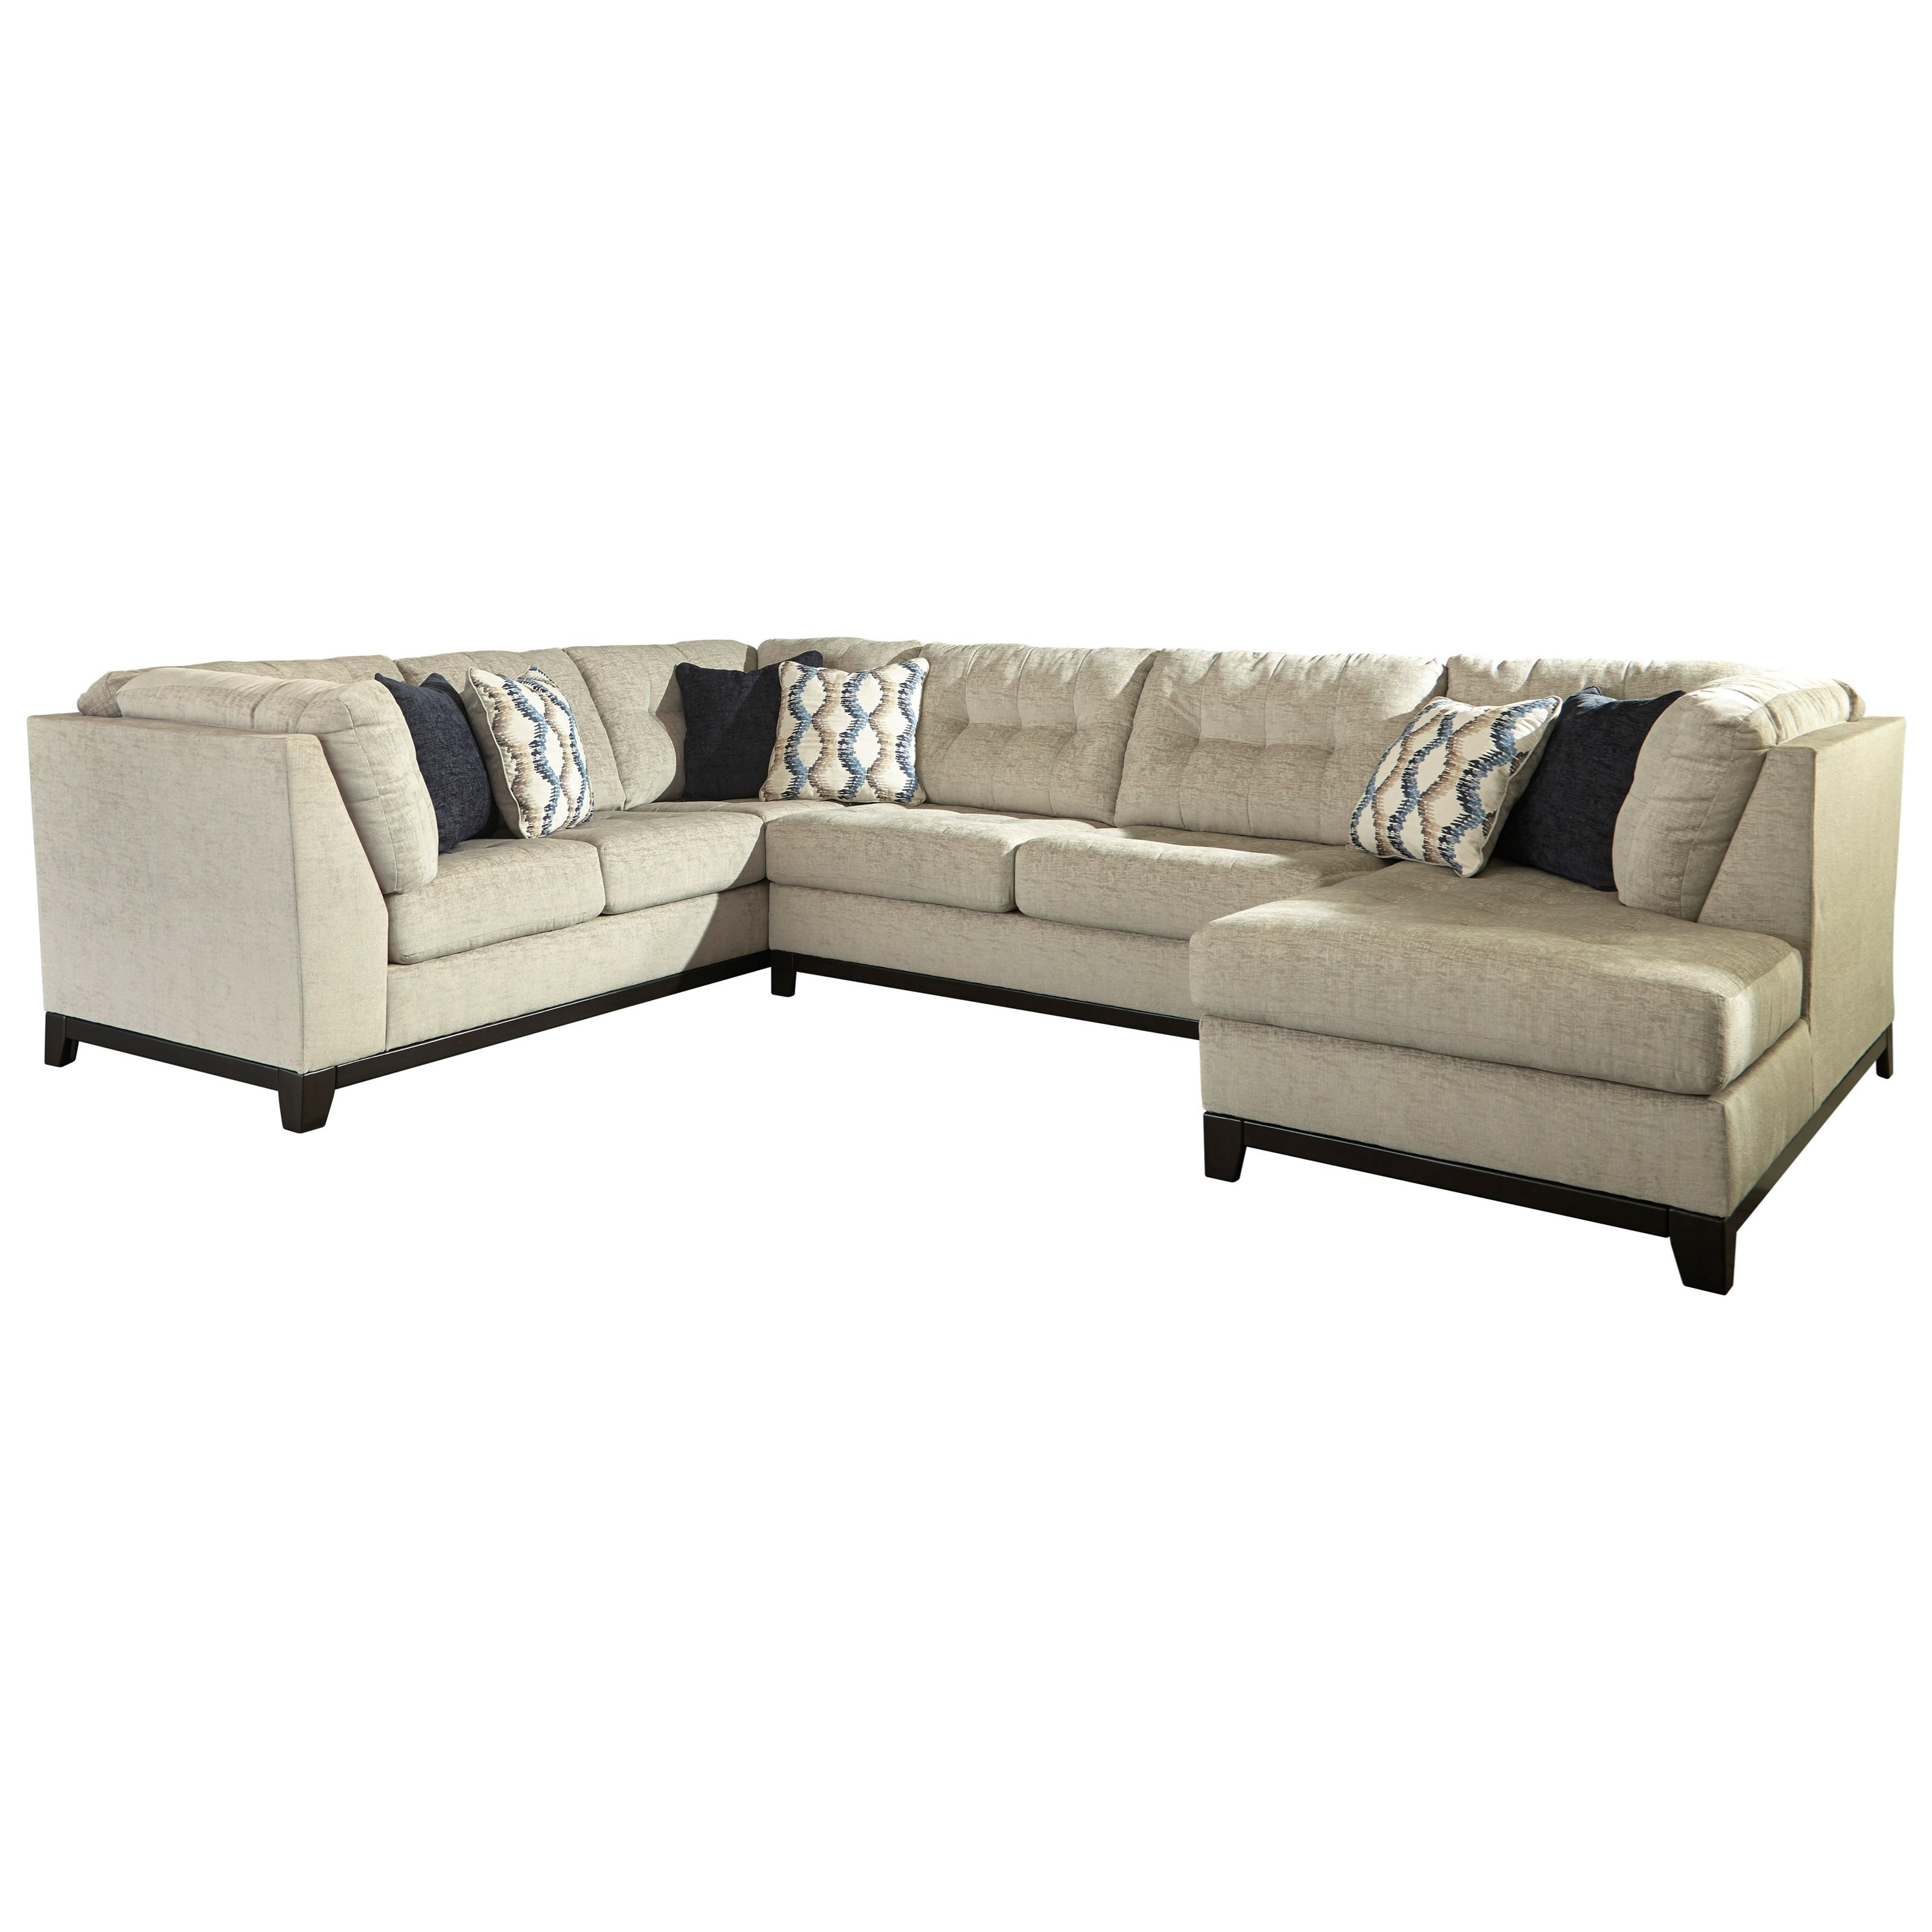 Trendz Bennington 3 Piece Sectional With Right Chaise | Ruby Gordon Throughout Gordon 3 Piece Sectionals With Raf Chaise (Image 25 of 25)